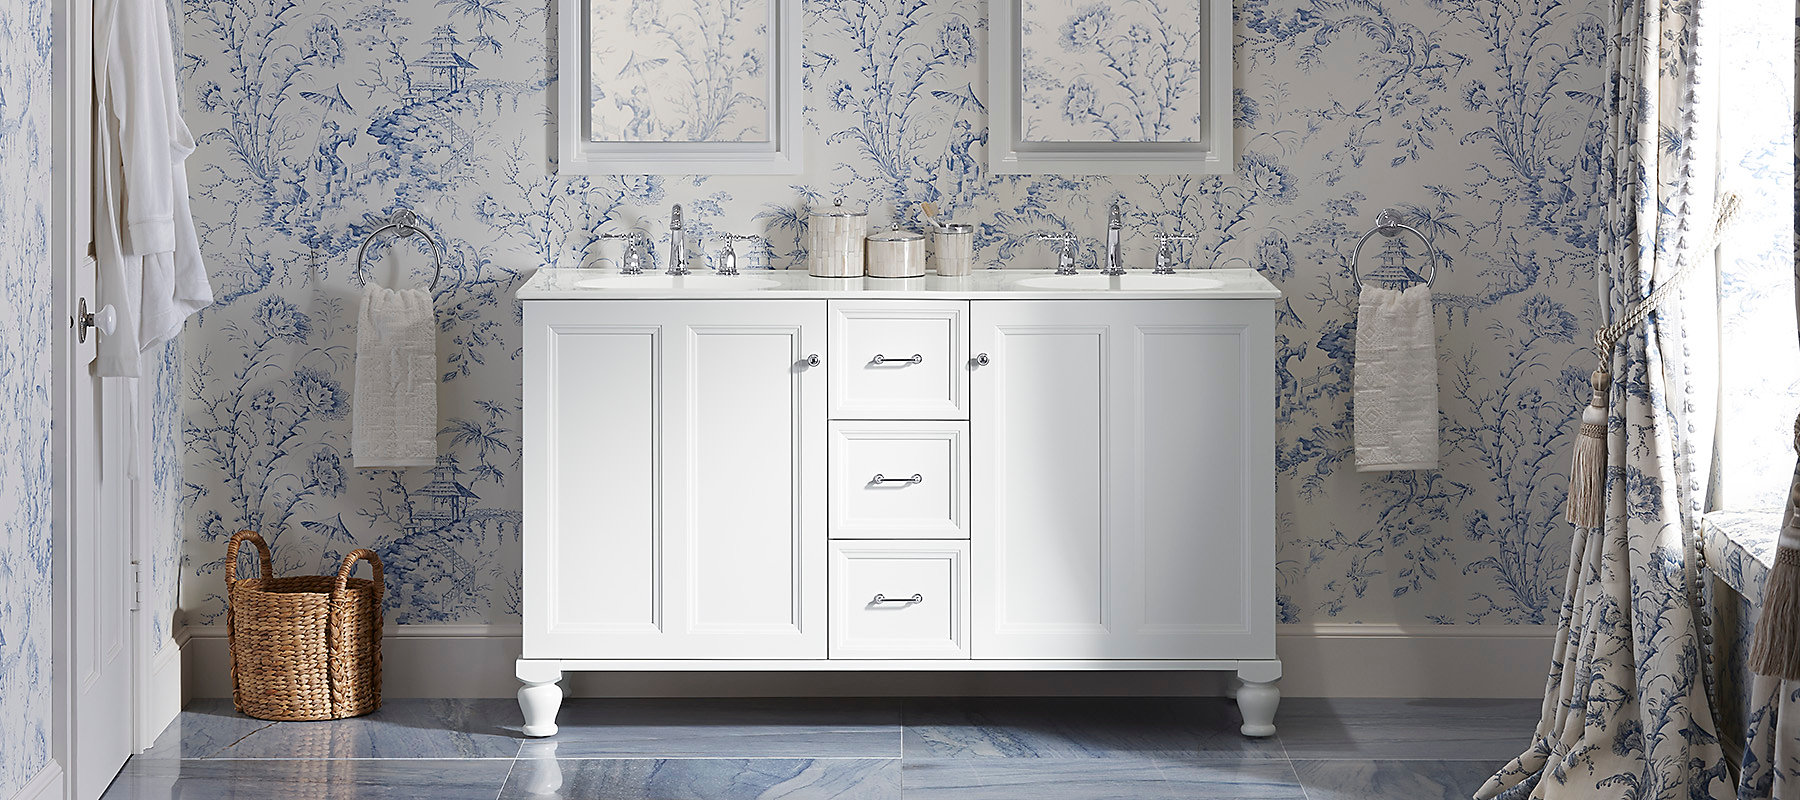 Kohler Beauty Begins With Eye Catching Storage